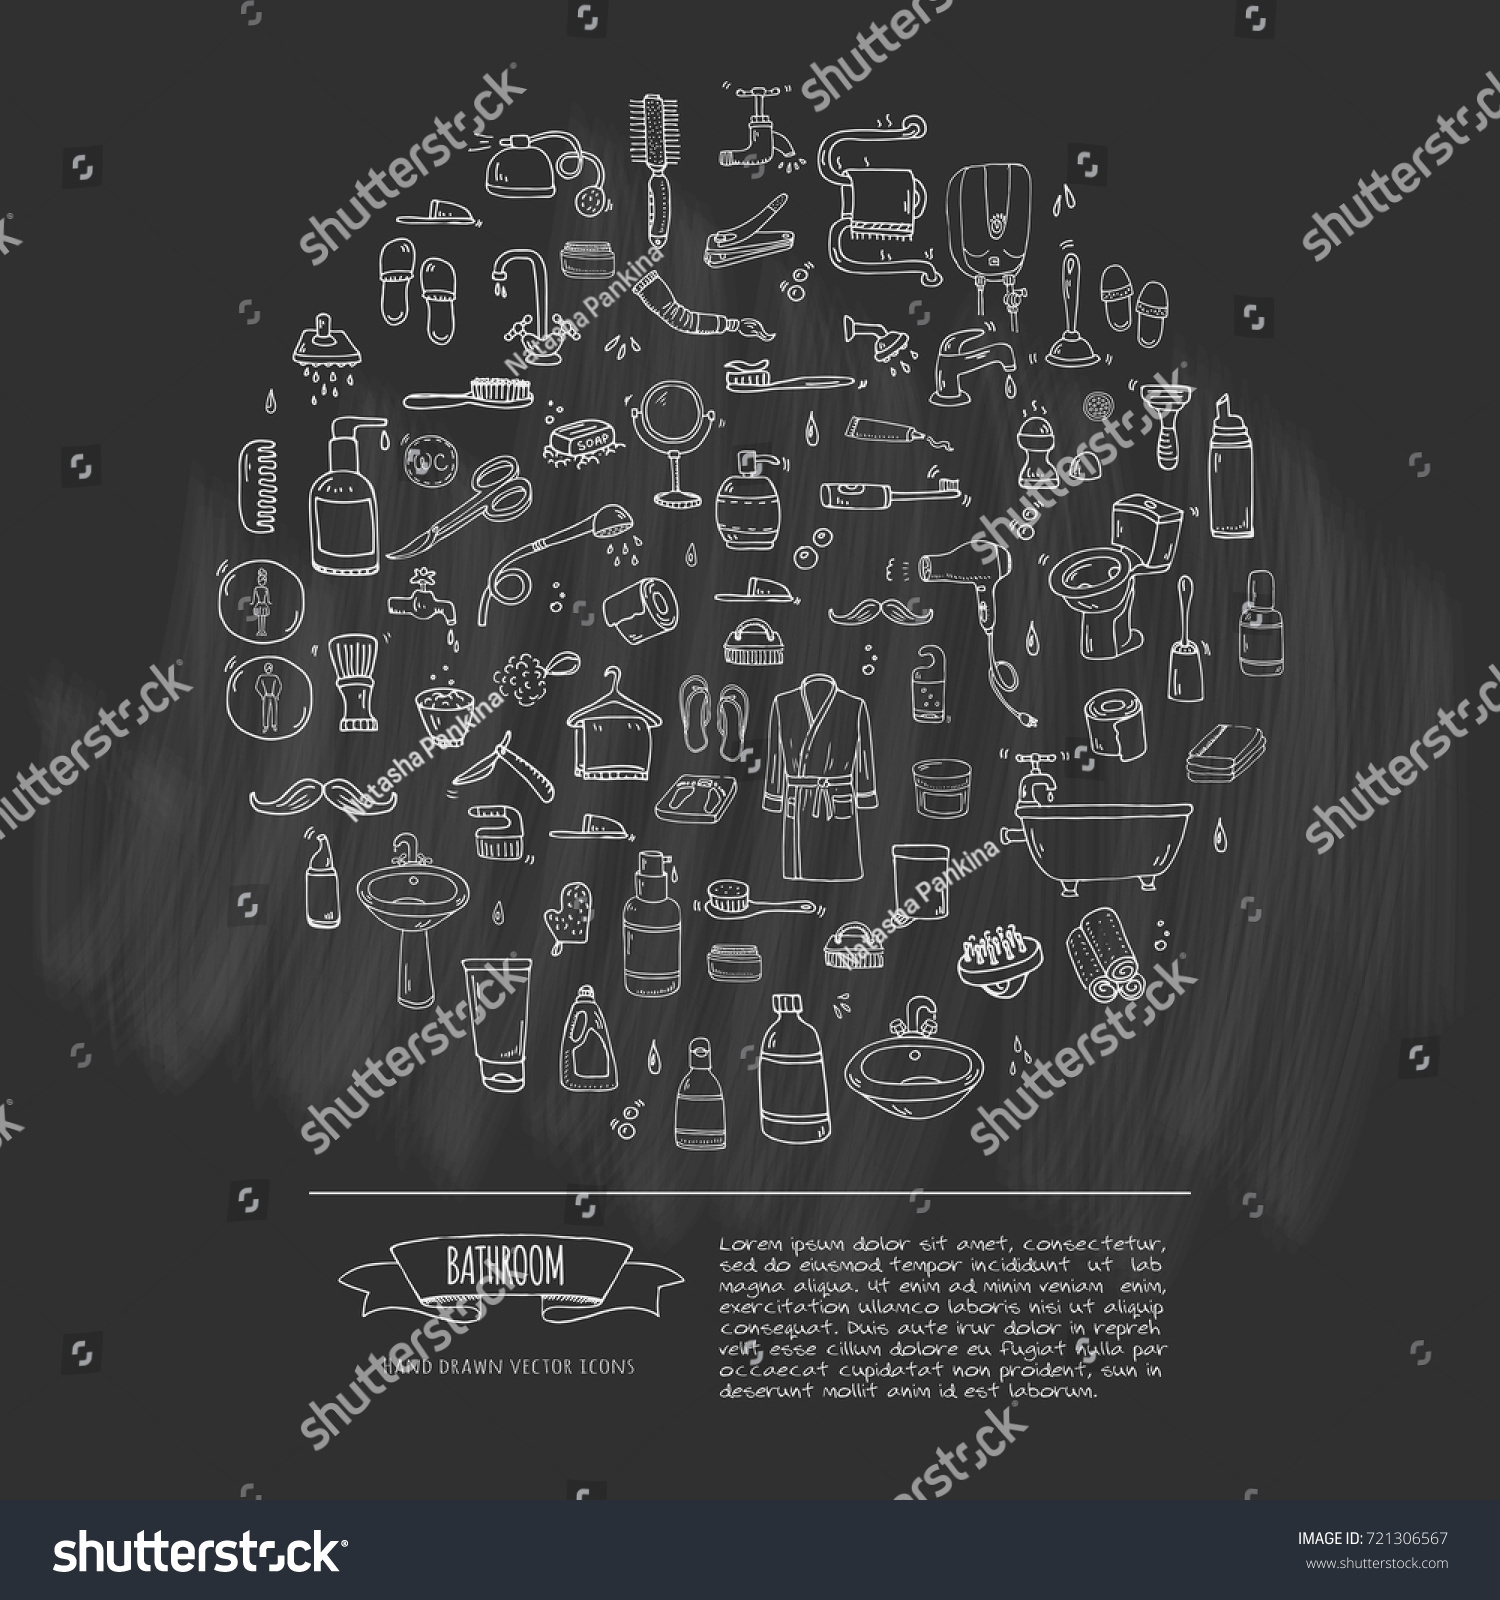 Hand Drawn Doodle Bathroom Related Icons Stock Vector